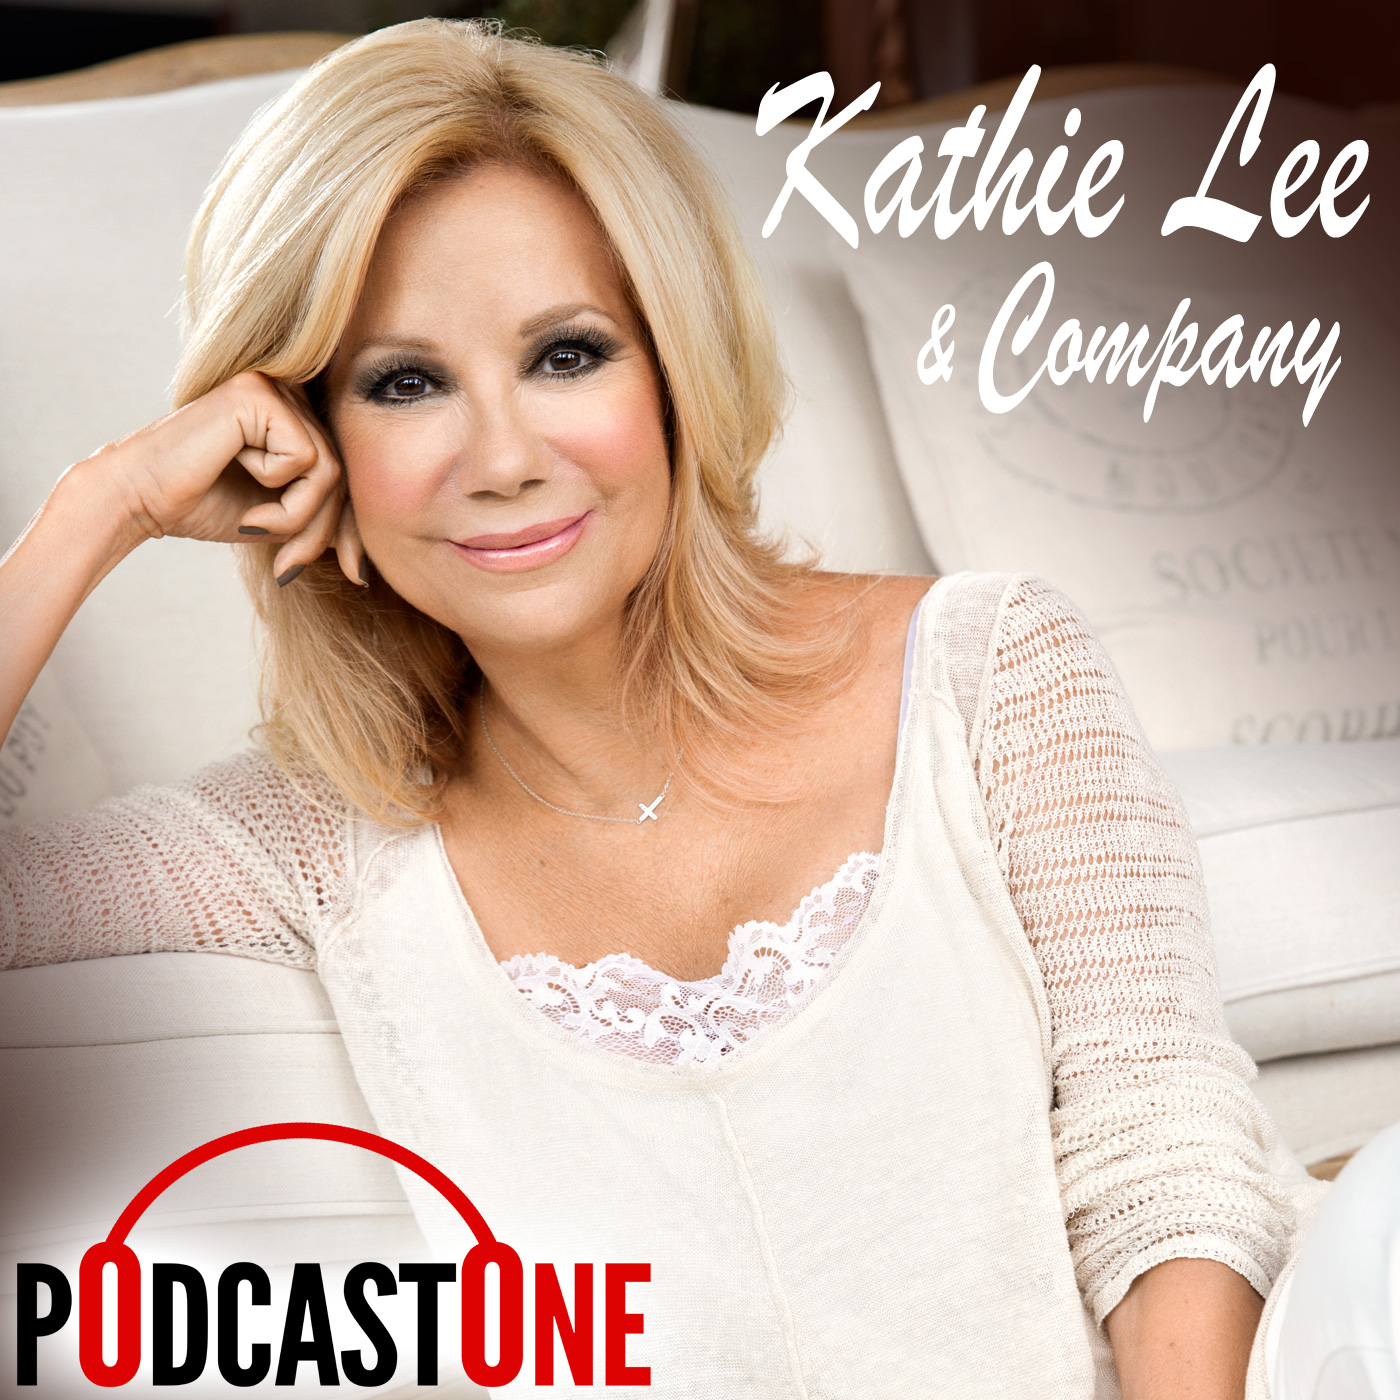 Kathie Lee and Company